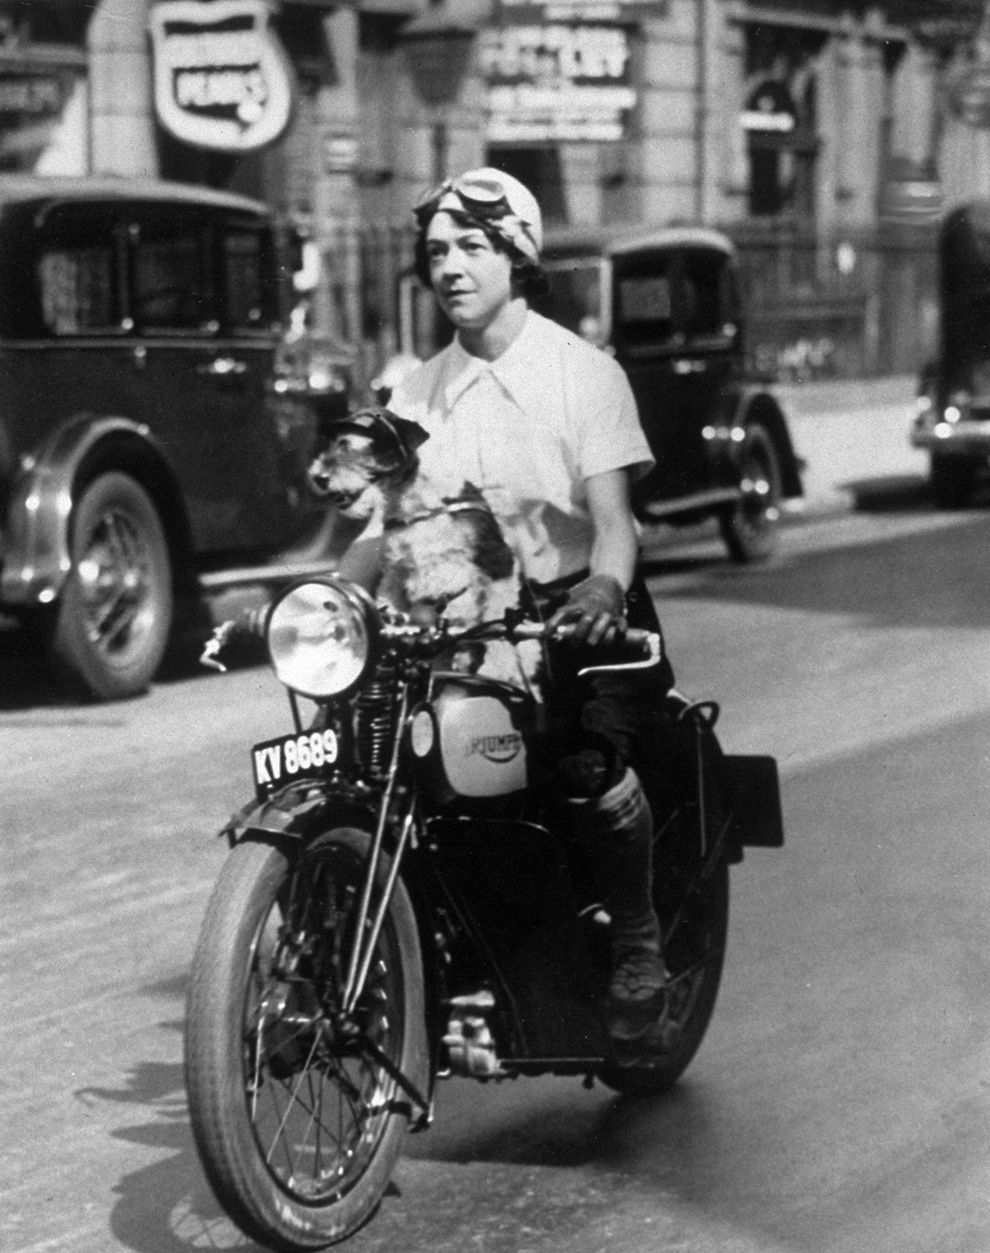 Motorcycles And Leather With Images Motorcycle Helmets Vintage